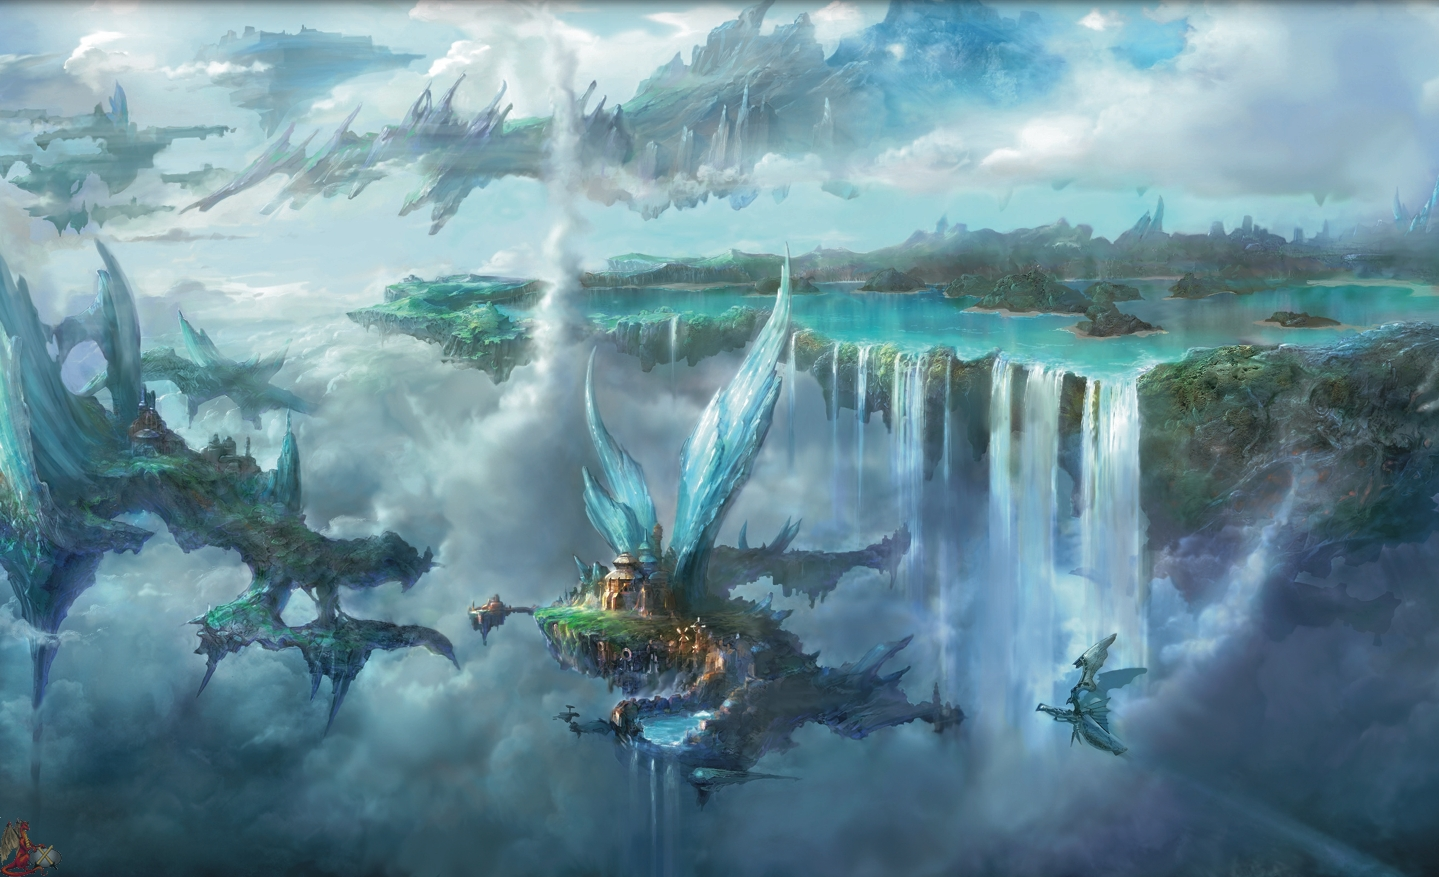 final fantasy xii wallpaper and background image | 1439x877 | id